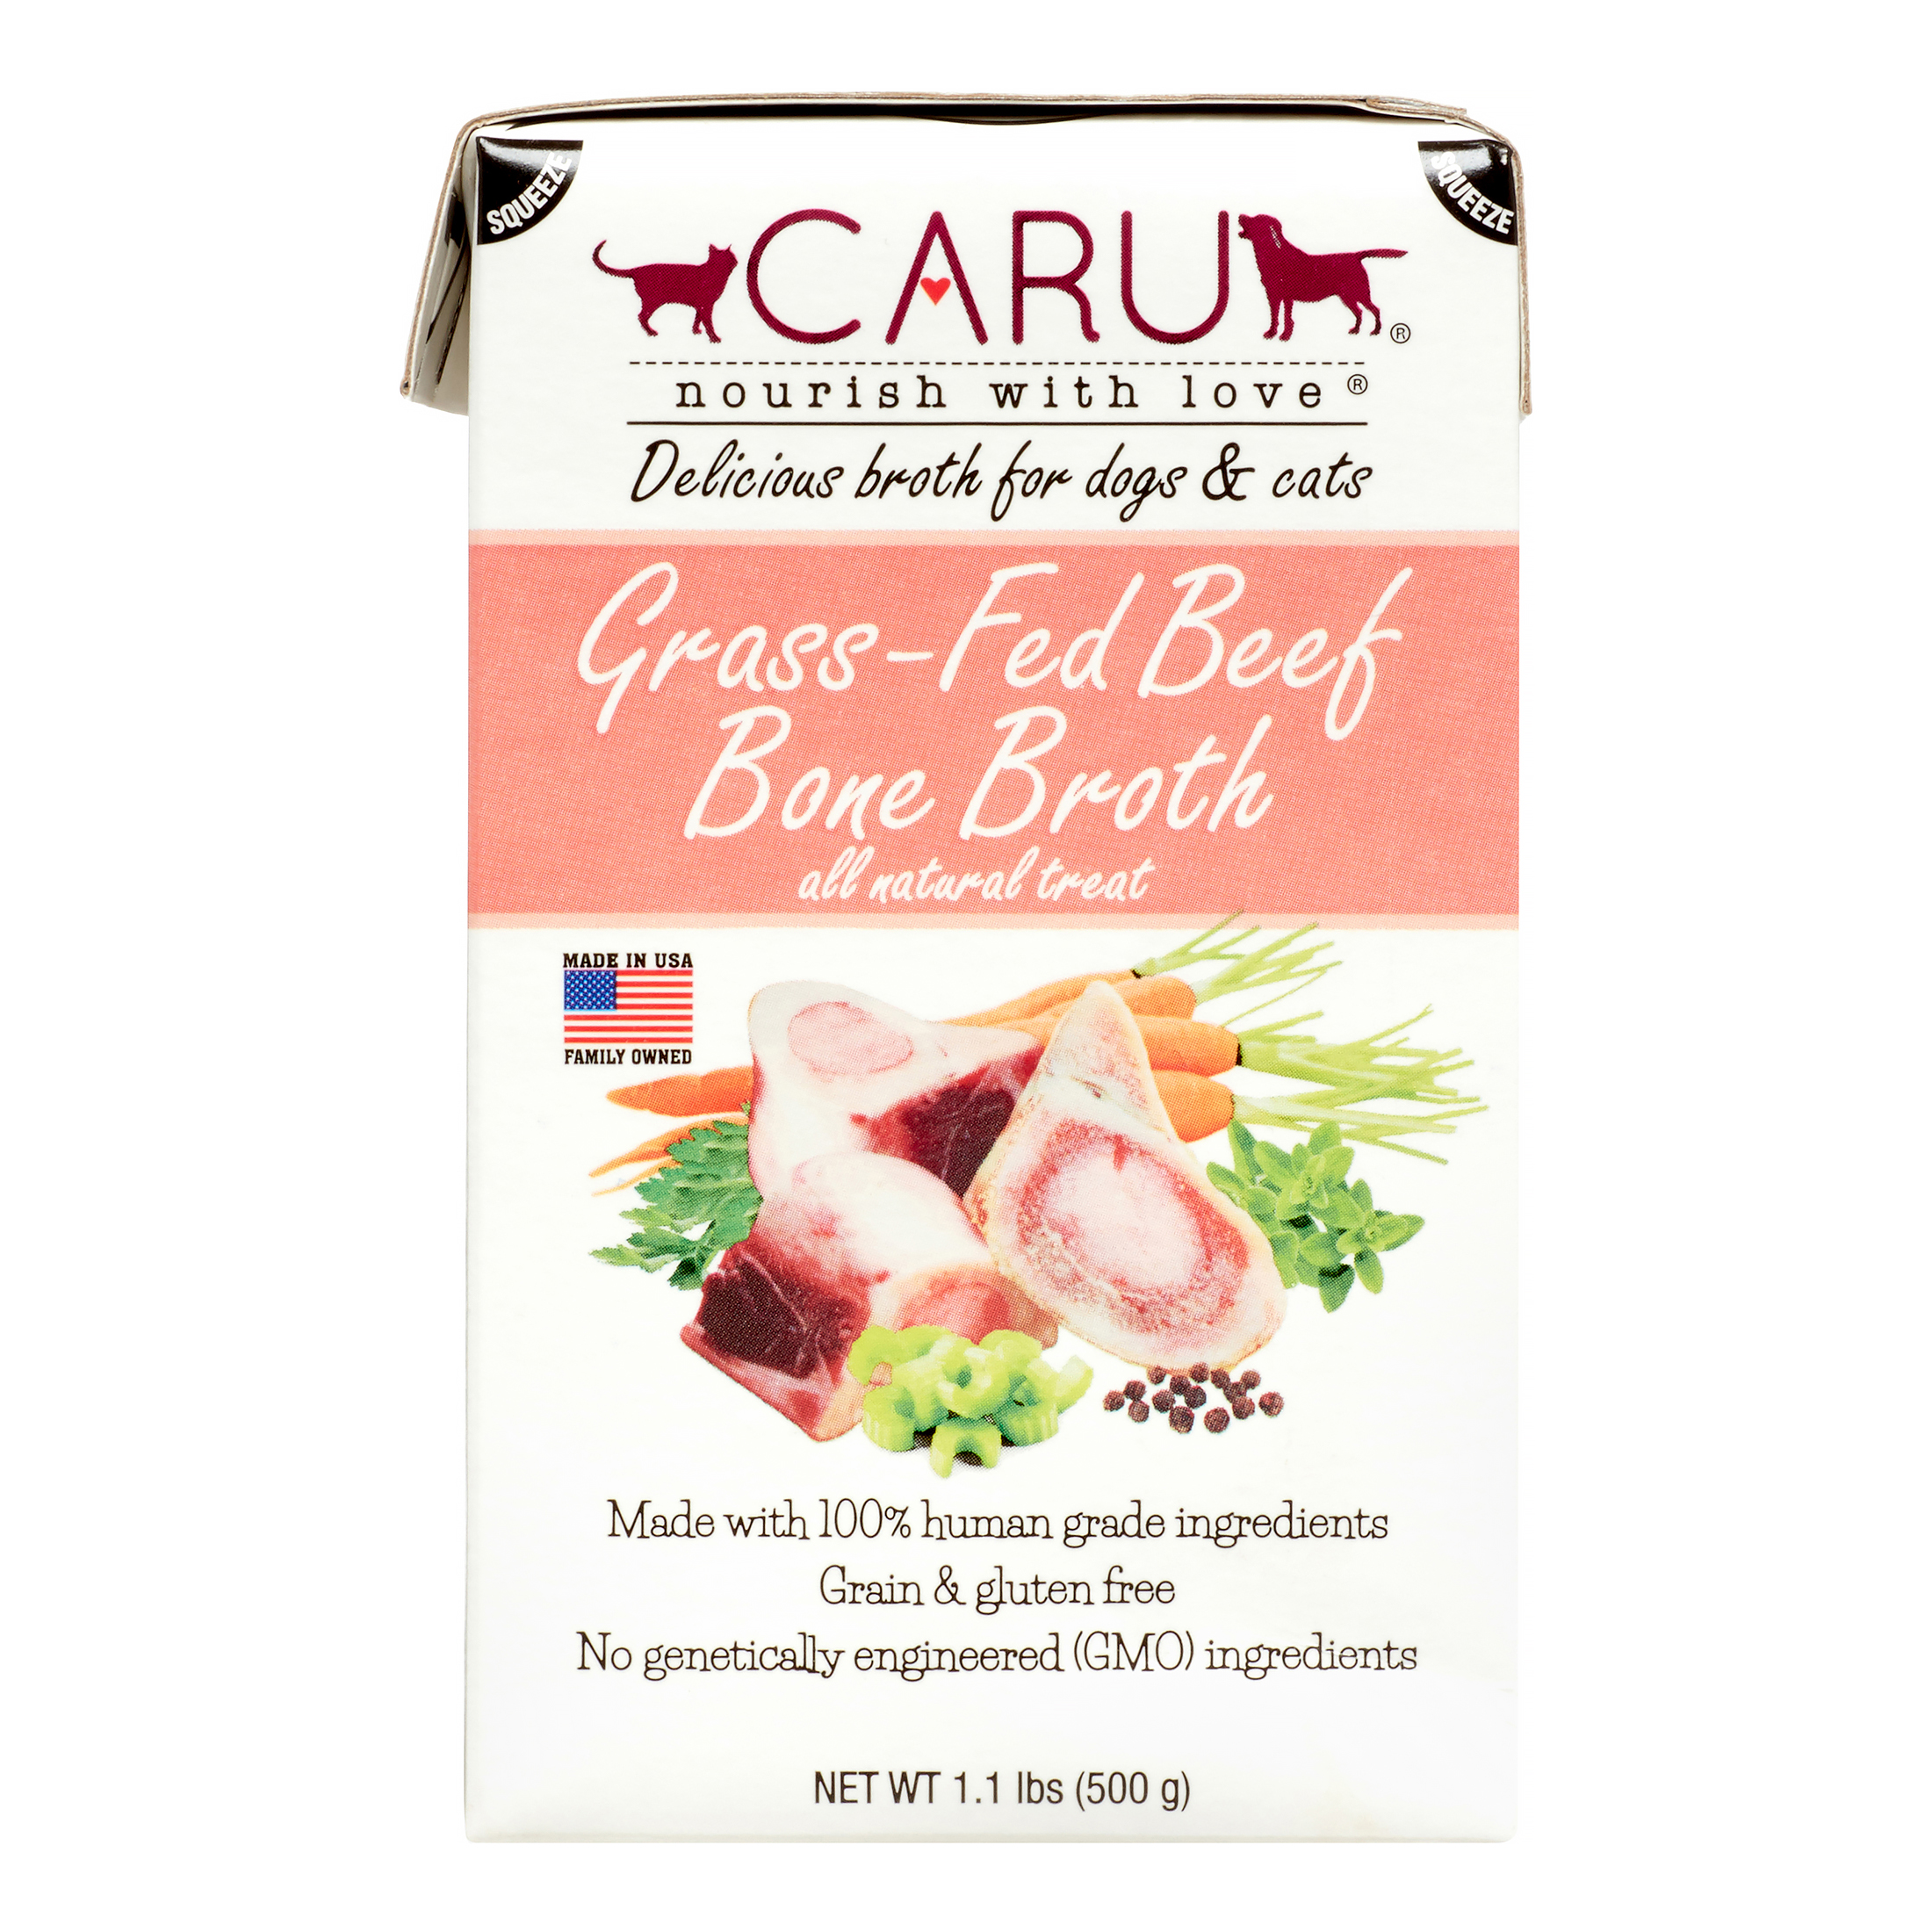 Caru Grass-Fed Beef Bone Broth for Dogs & Cats - 1.1 lbs